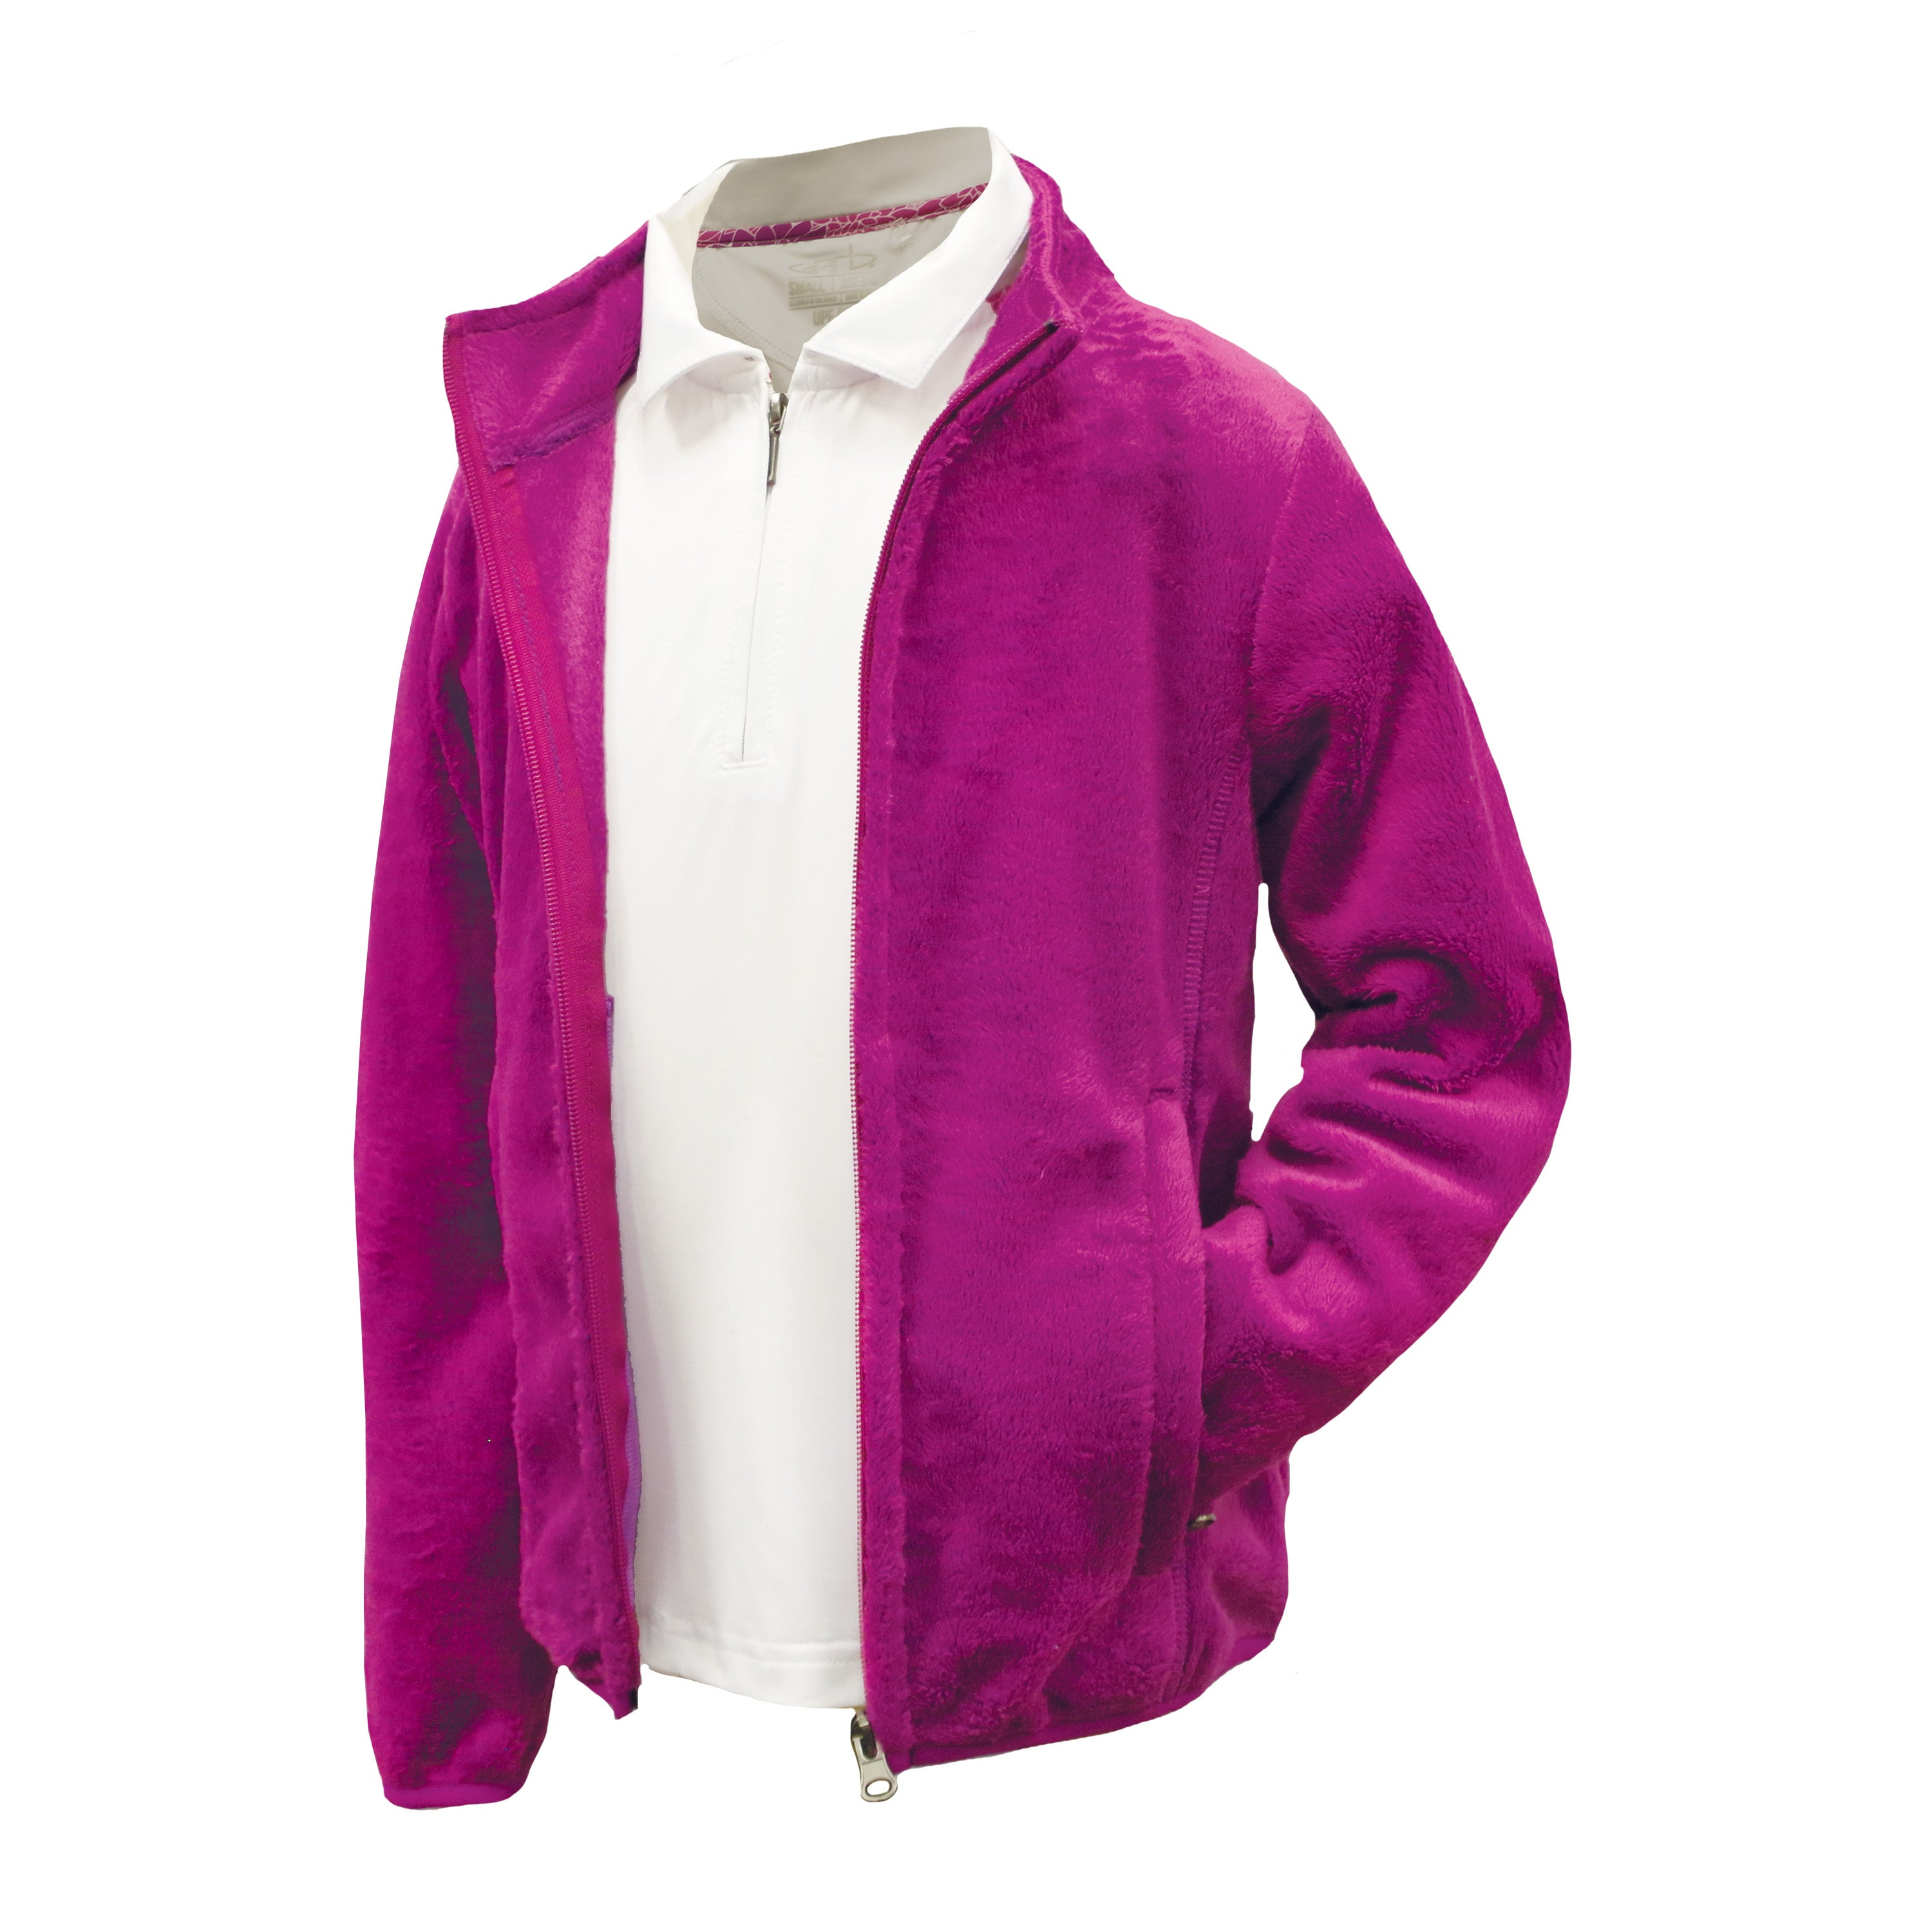 Leslie - Girls Full Zip Plush Golf Jacket By Garb Inc Junior Golf Apparel for Girls